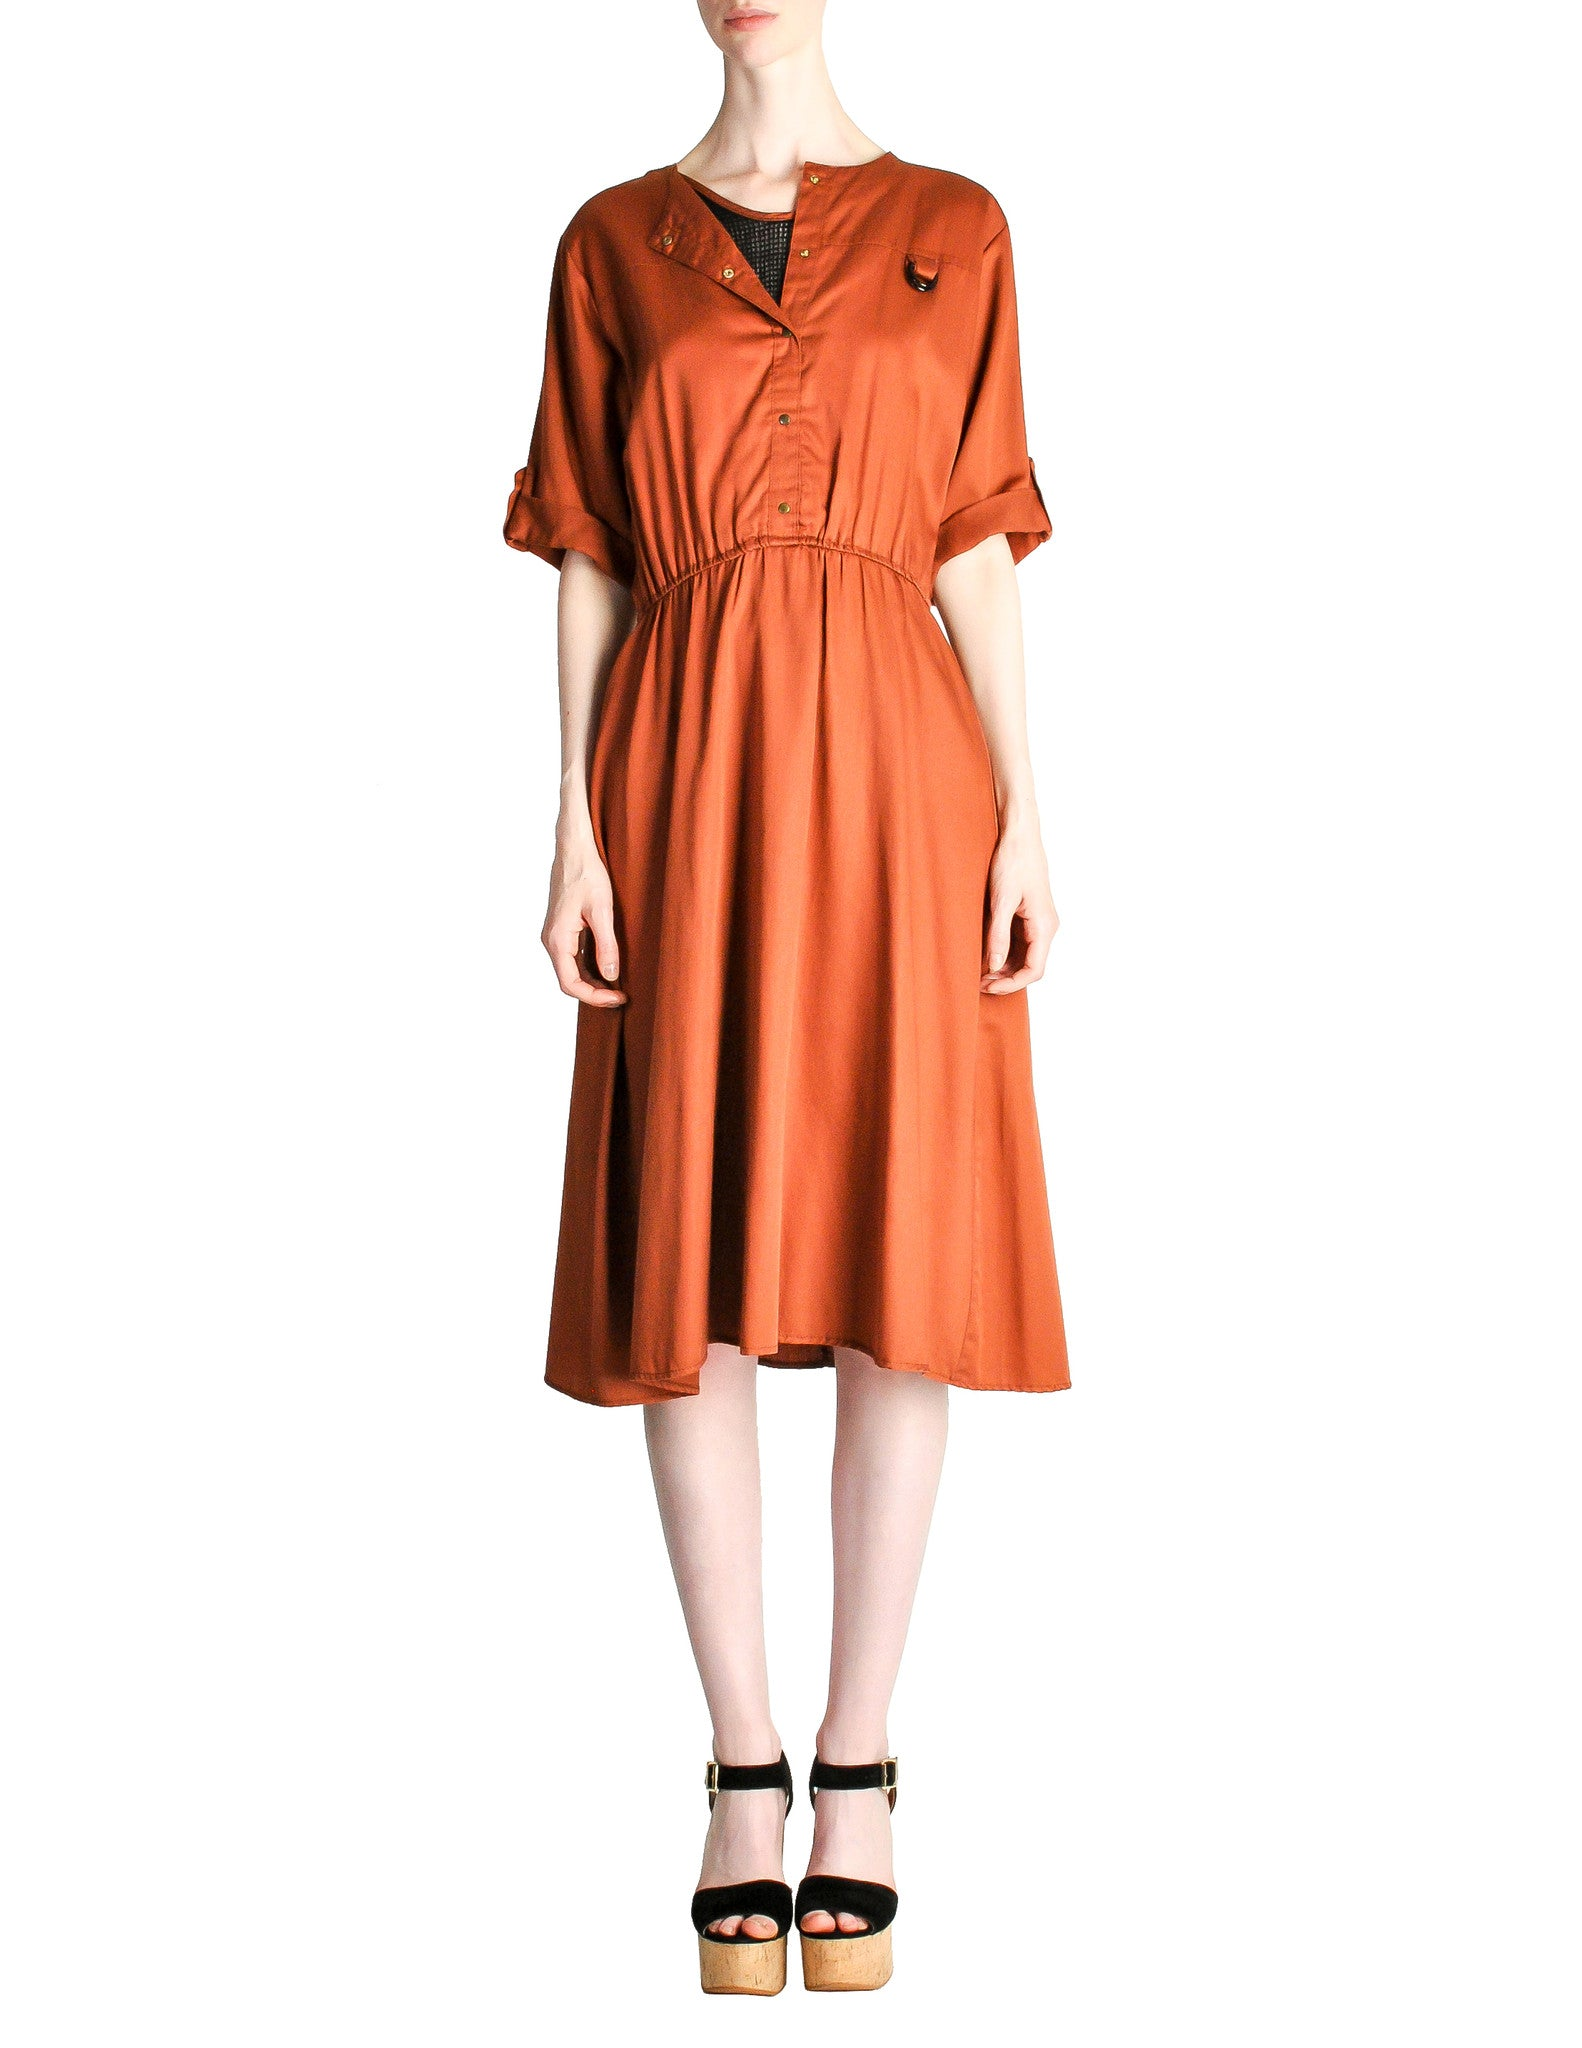 Vintage 1970s Rust Orange Black Mesh Shirt Dress - Amarcord Vintage Fashion  - 1